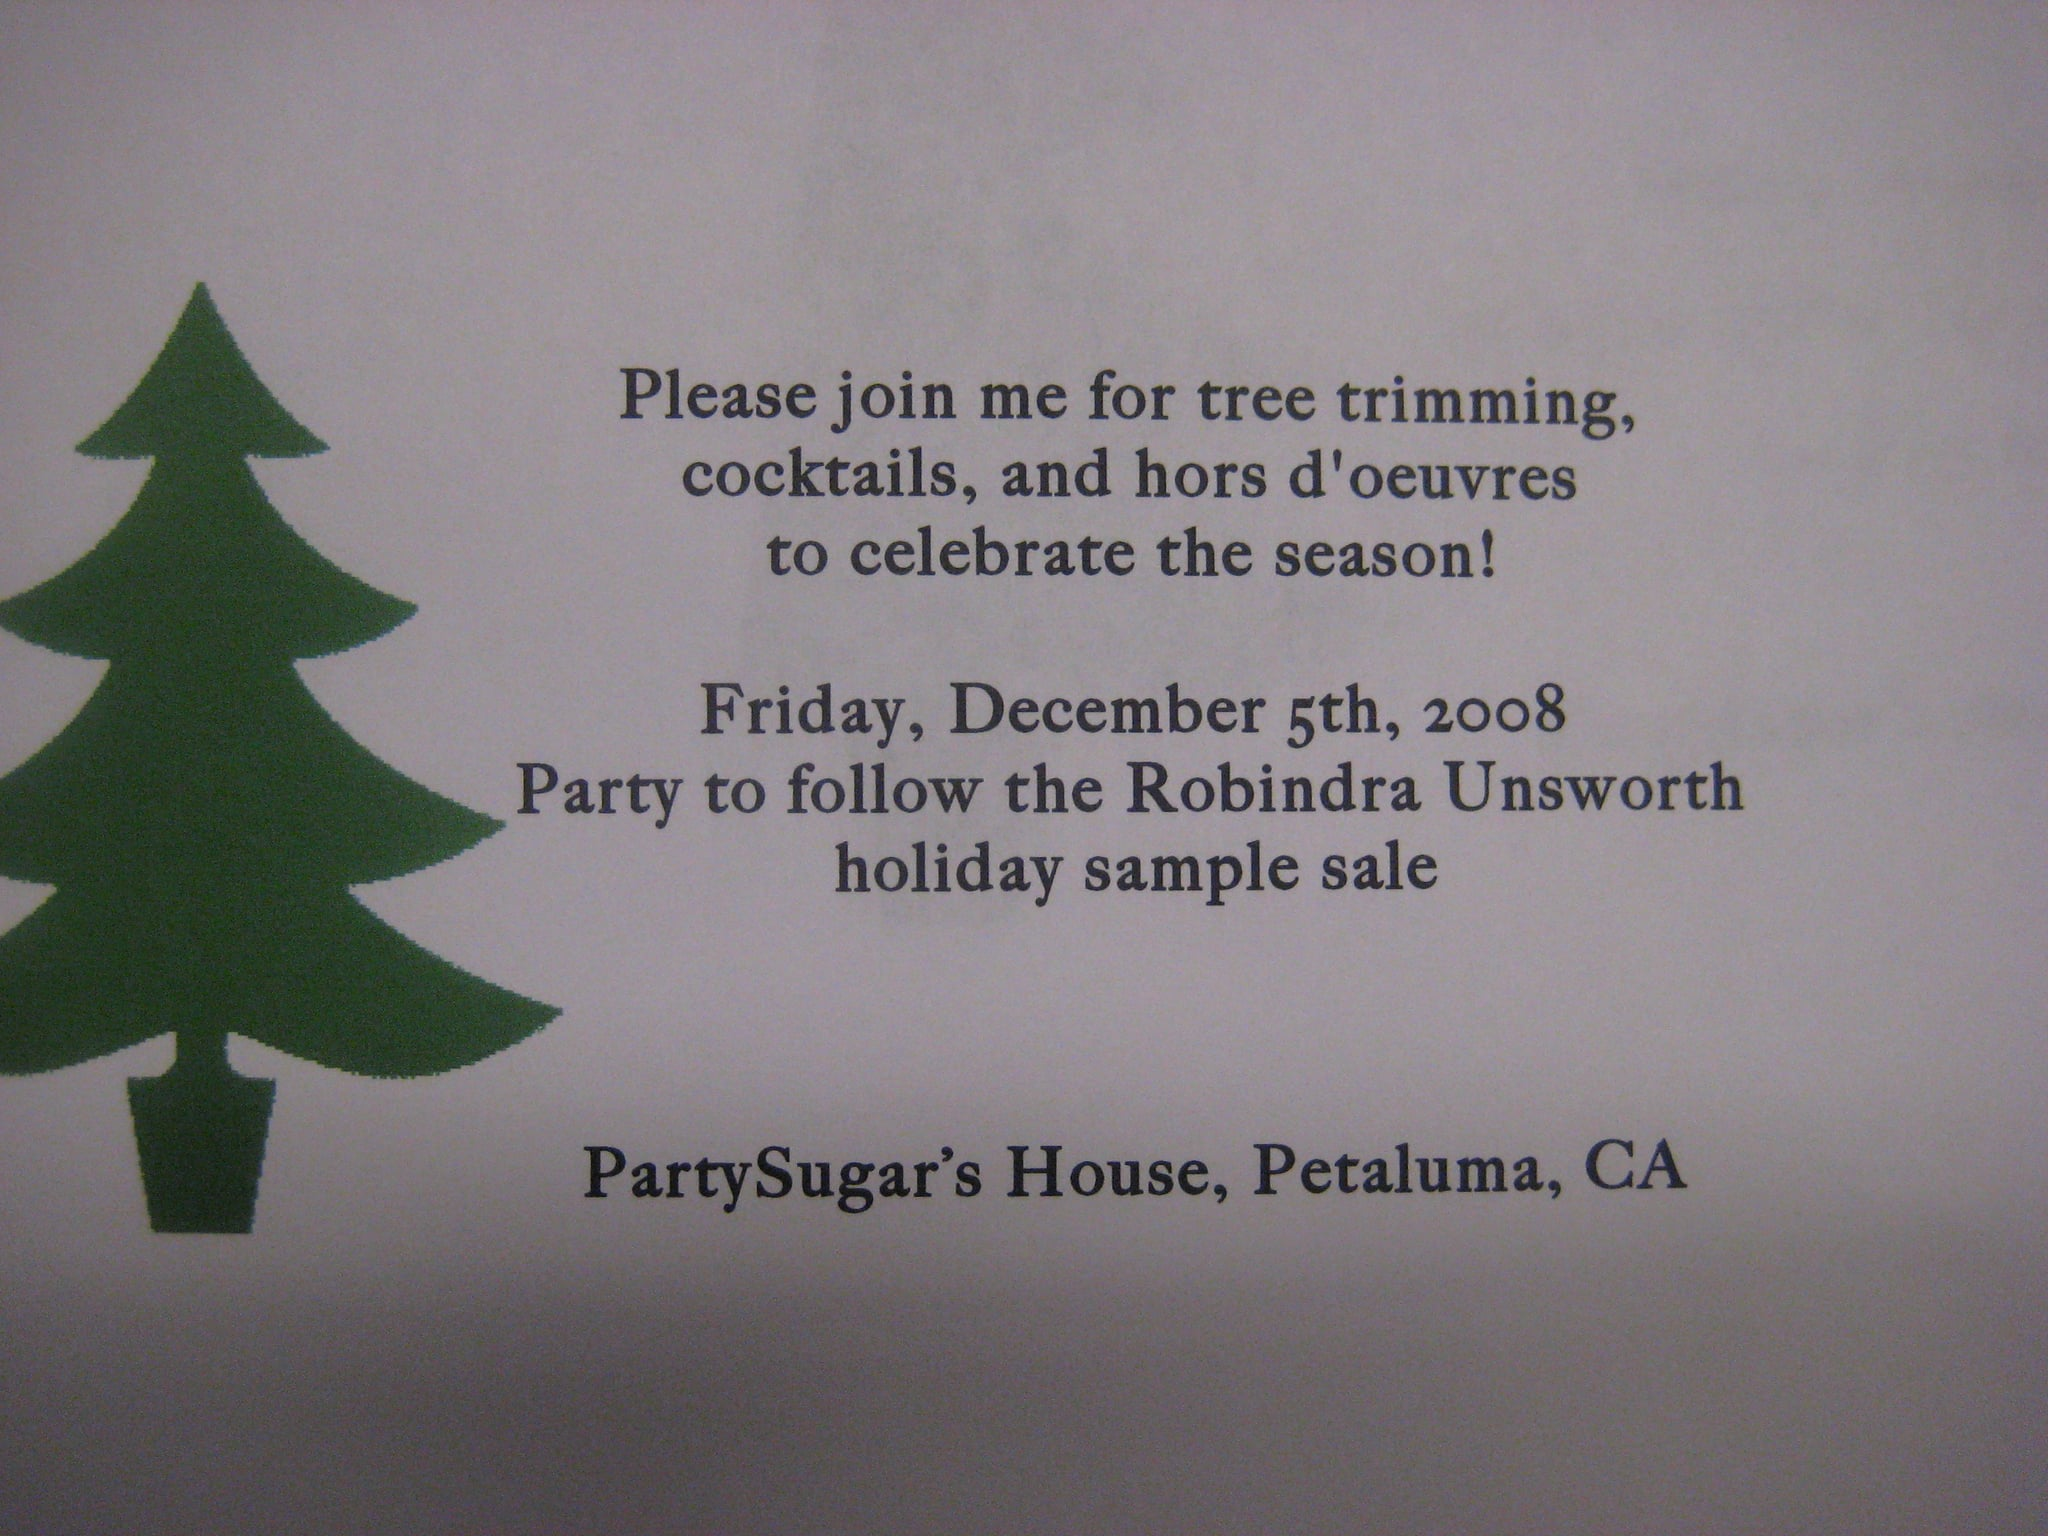 Come Party With Me: Tree Trimming — Invite | POPSUGAR Food